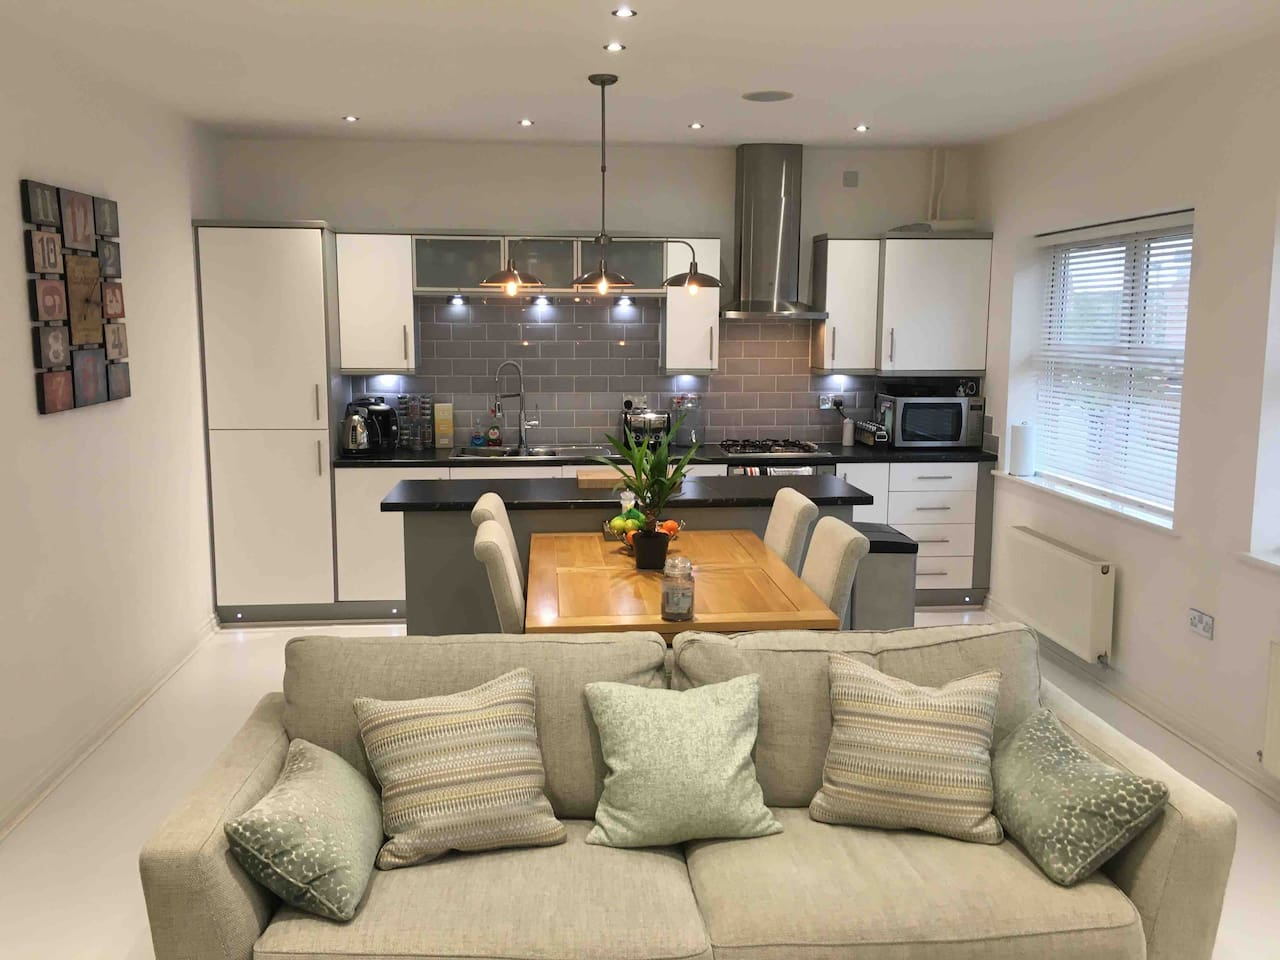 Open plan fully equipped kitchen, lounge and diner.